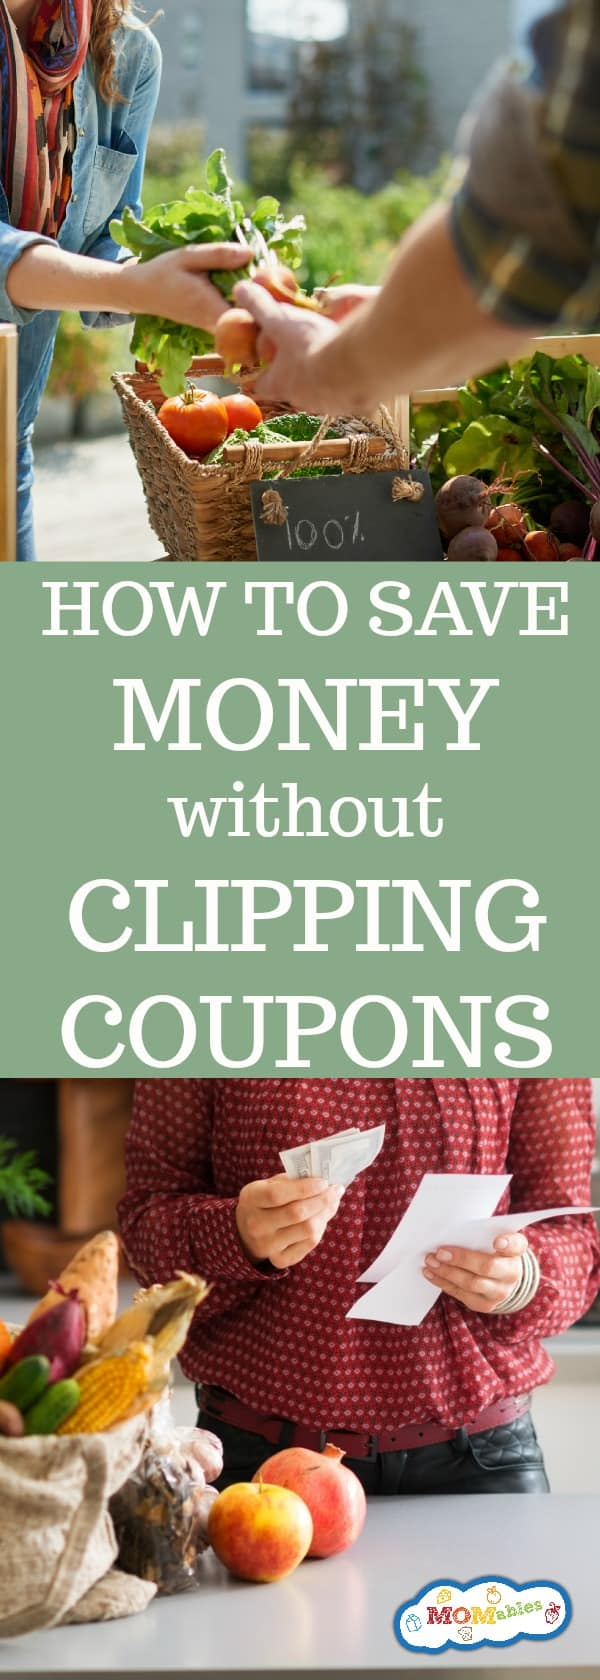 Check out these simple tips and tricks to help you save money on groceries without clipping coupons!